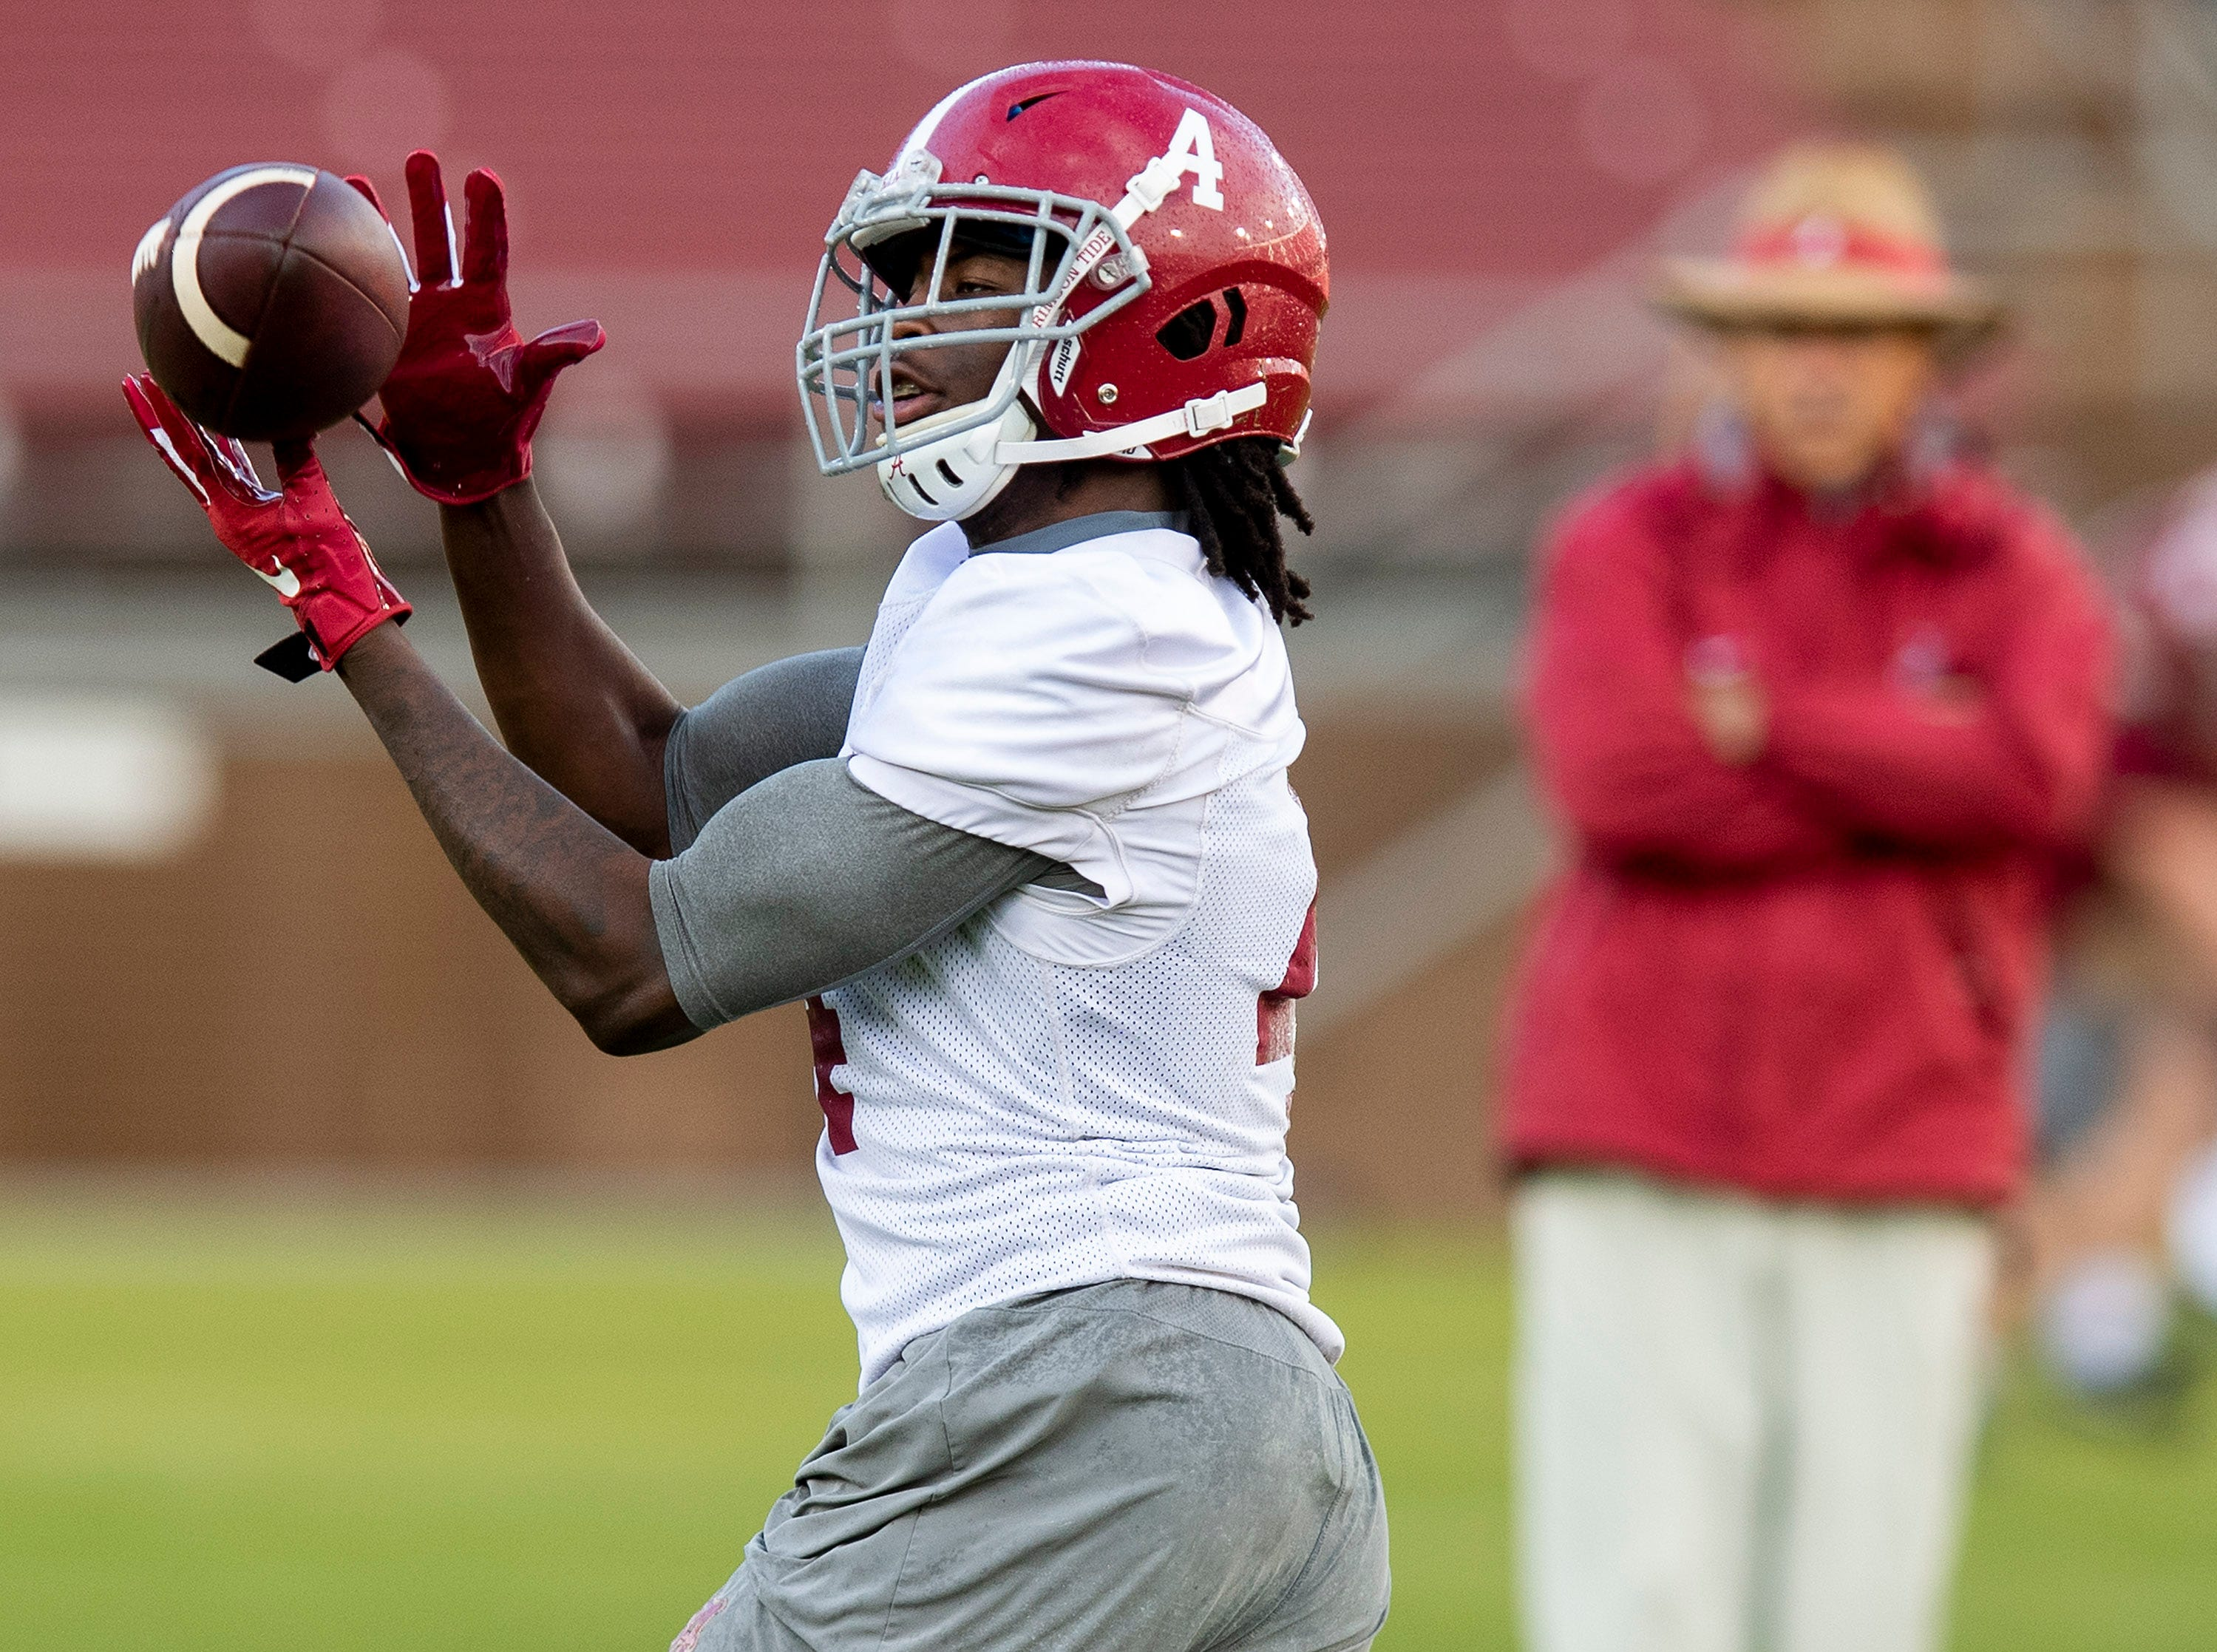 Alabama wide receiver Jerry Jeudy (4) catches a pass as Alabama practices on the Stanford campus in Stanford, Ca., on Saturday January 5, 2019.